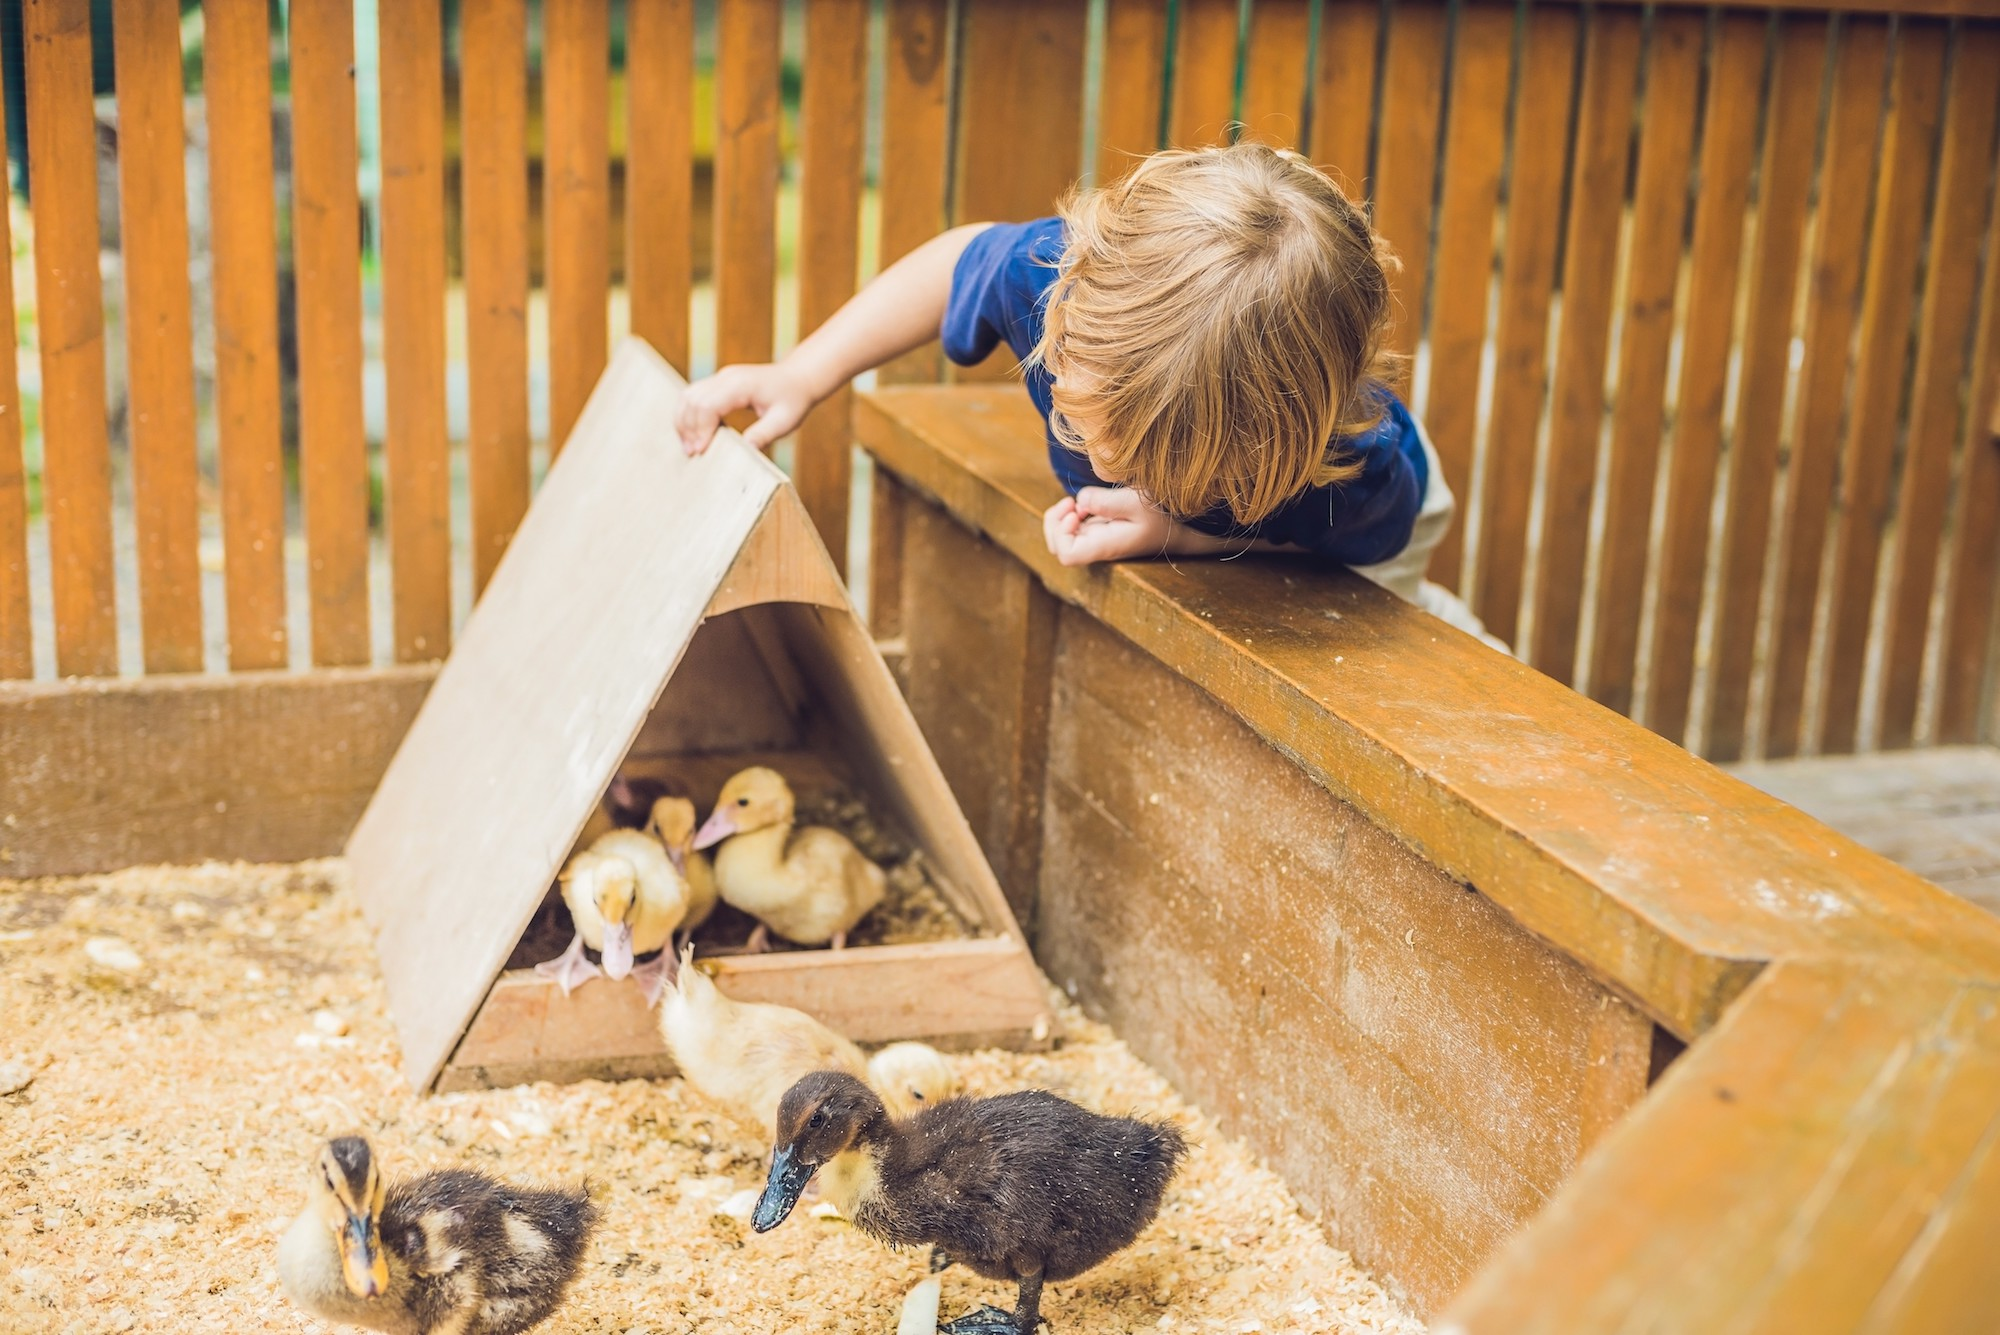 Vulnerable children heal trauma by working with animals, at one of the top Kent charities for children's mental health.